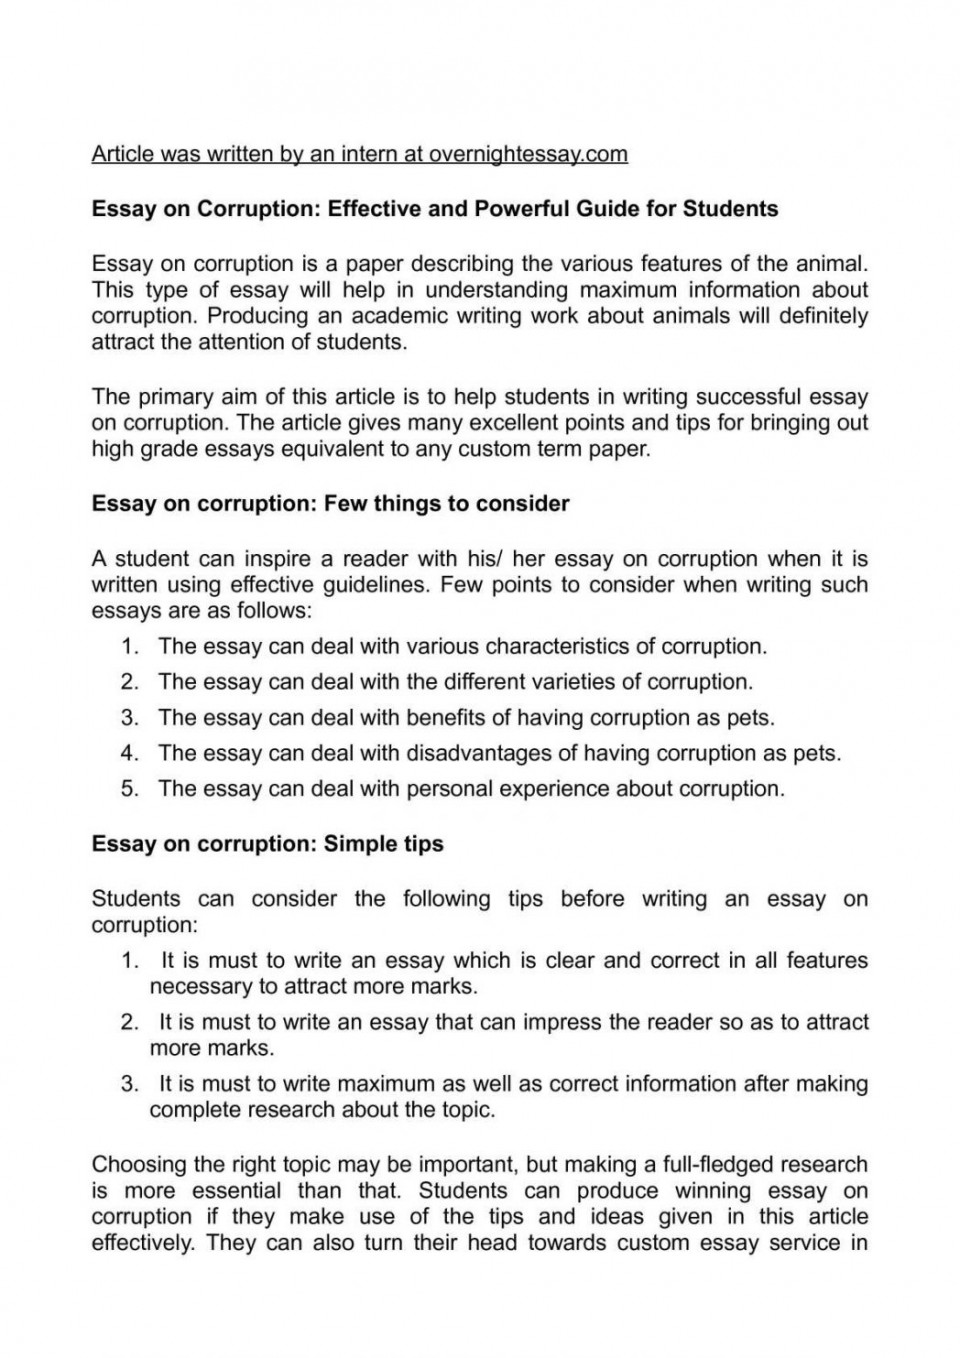 015 How To Write This I Believe Essay Easy Essays Calam Atilde Copy O On Corruption Effective Samples Good Topics Template 1048x1483 Fantastic A Things What 960